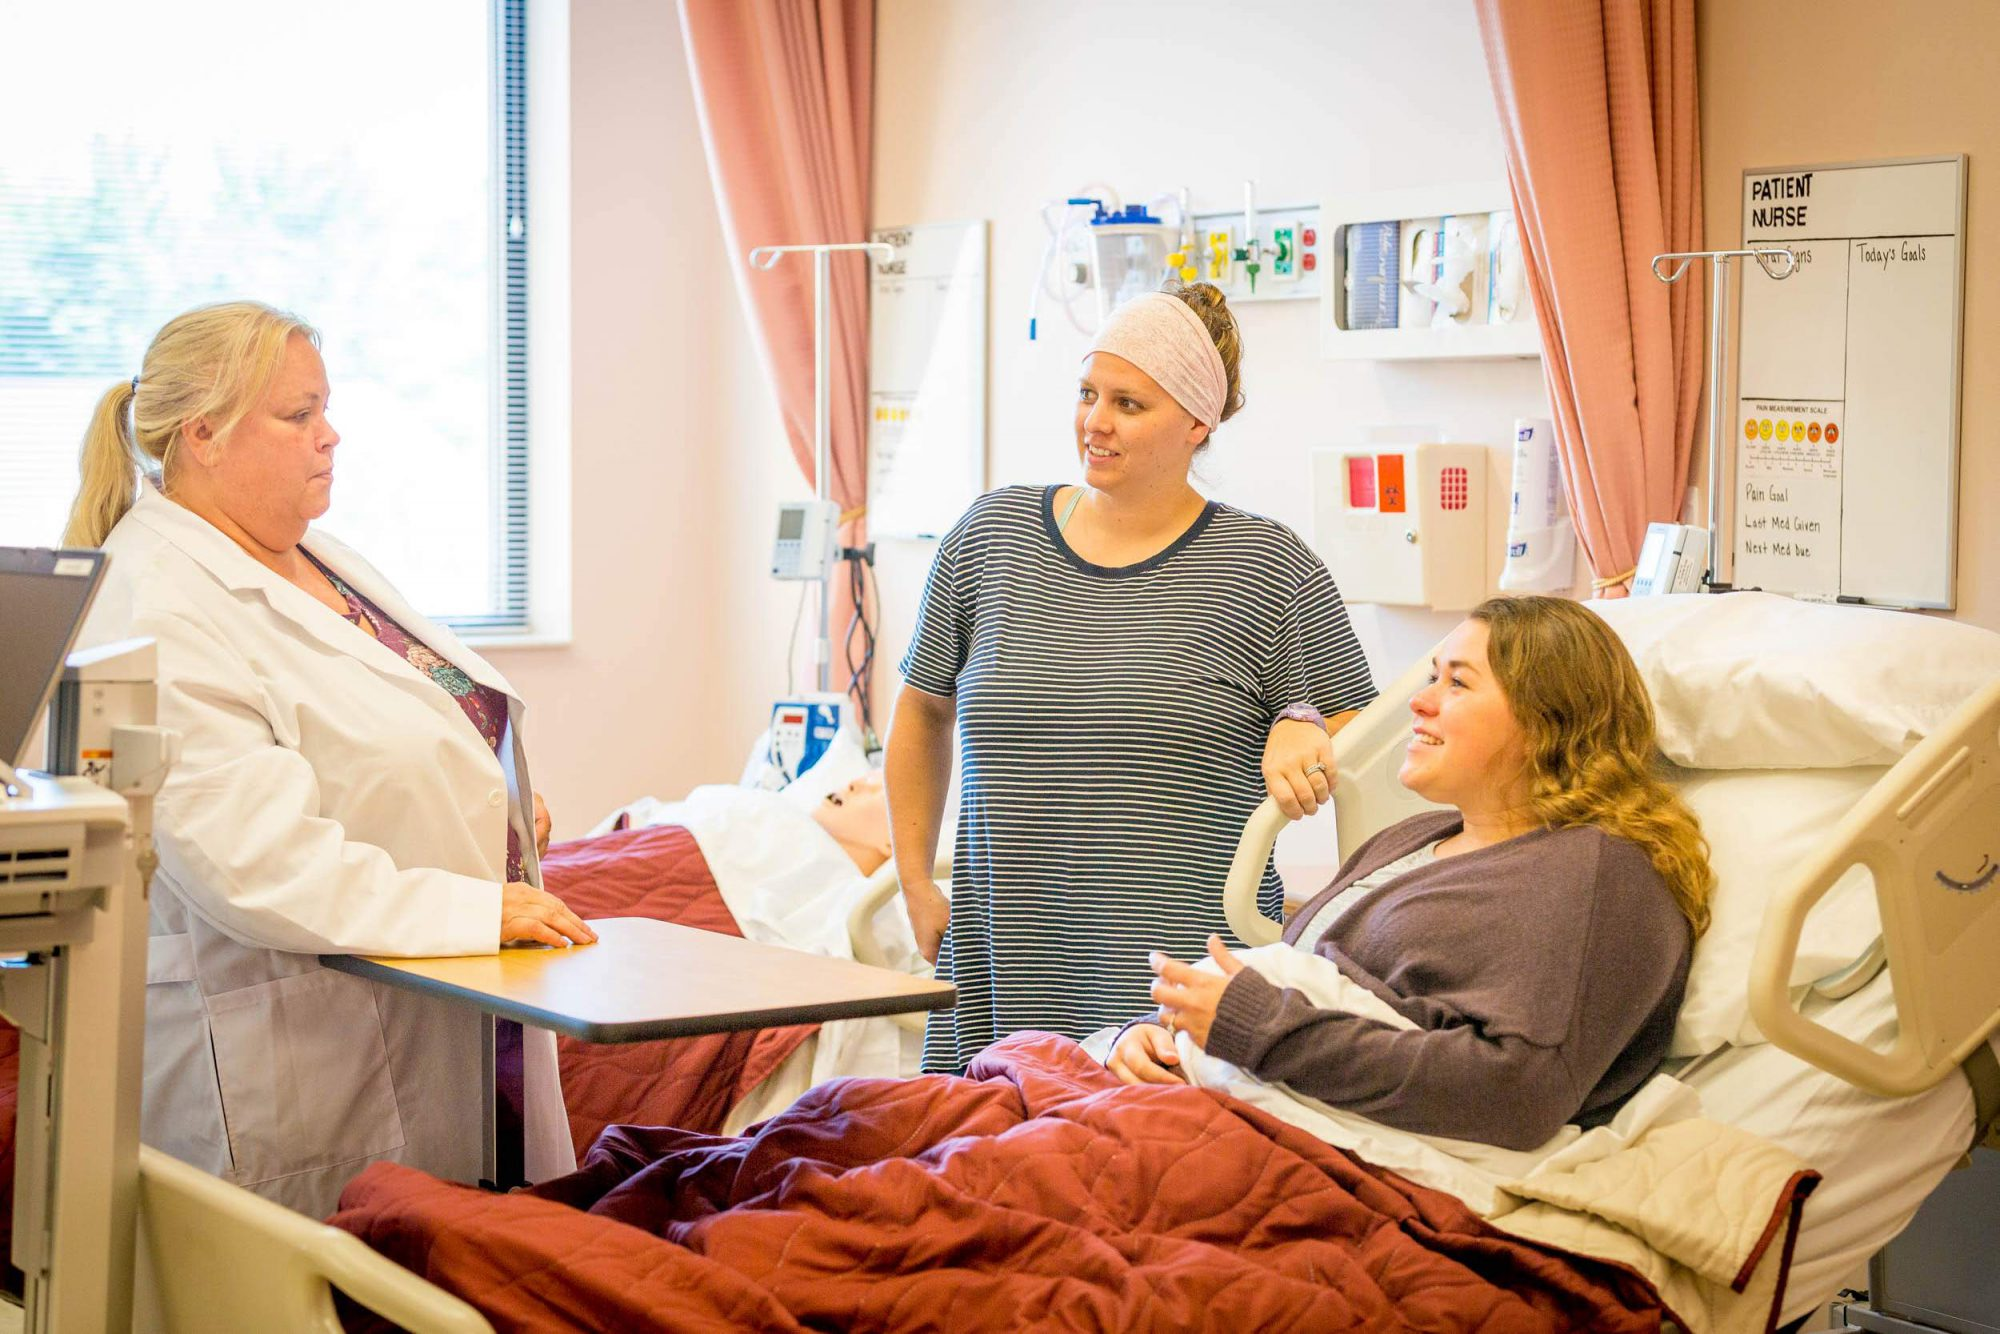 Nursing students practice their bedside patient skills under supervision of a professor in the nursing lab